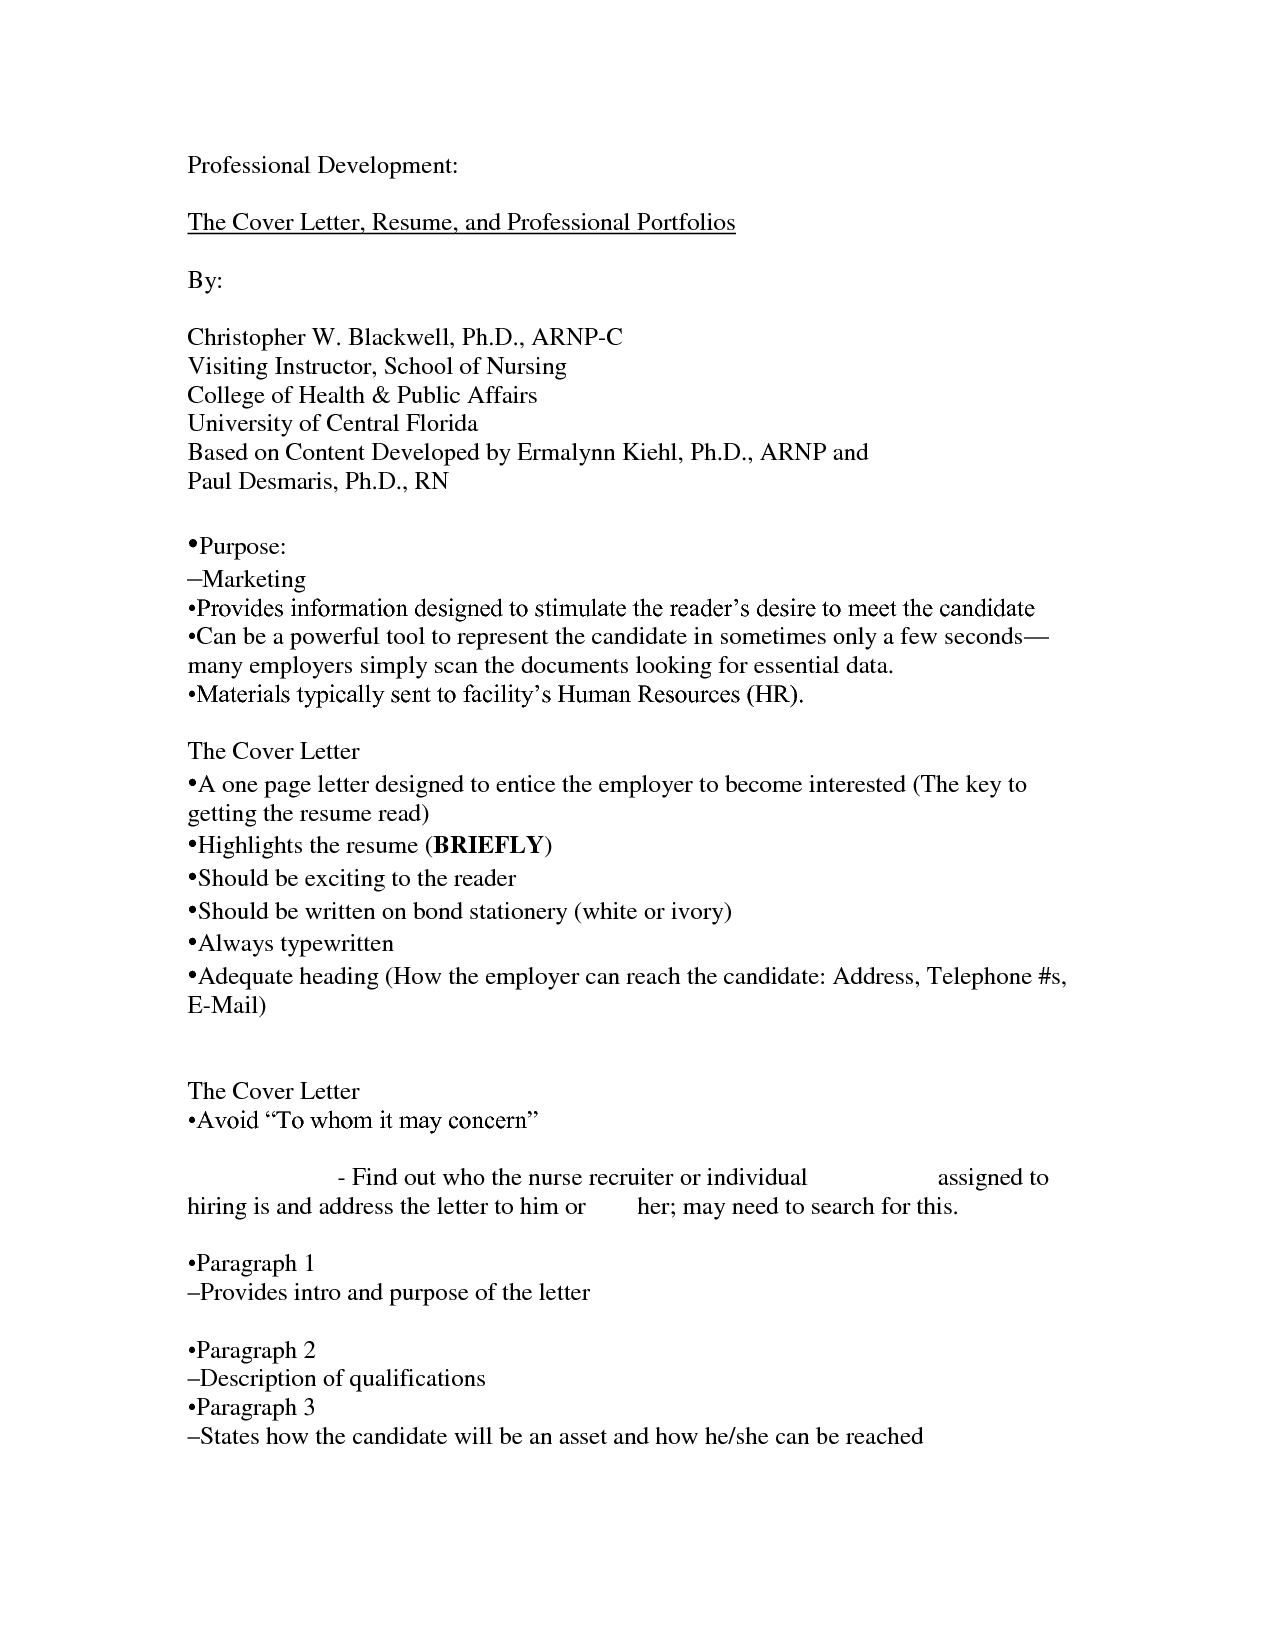 Examples Of Professional Resumes And Cover Letters Professional Resume Cover Letter Sample Professional